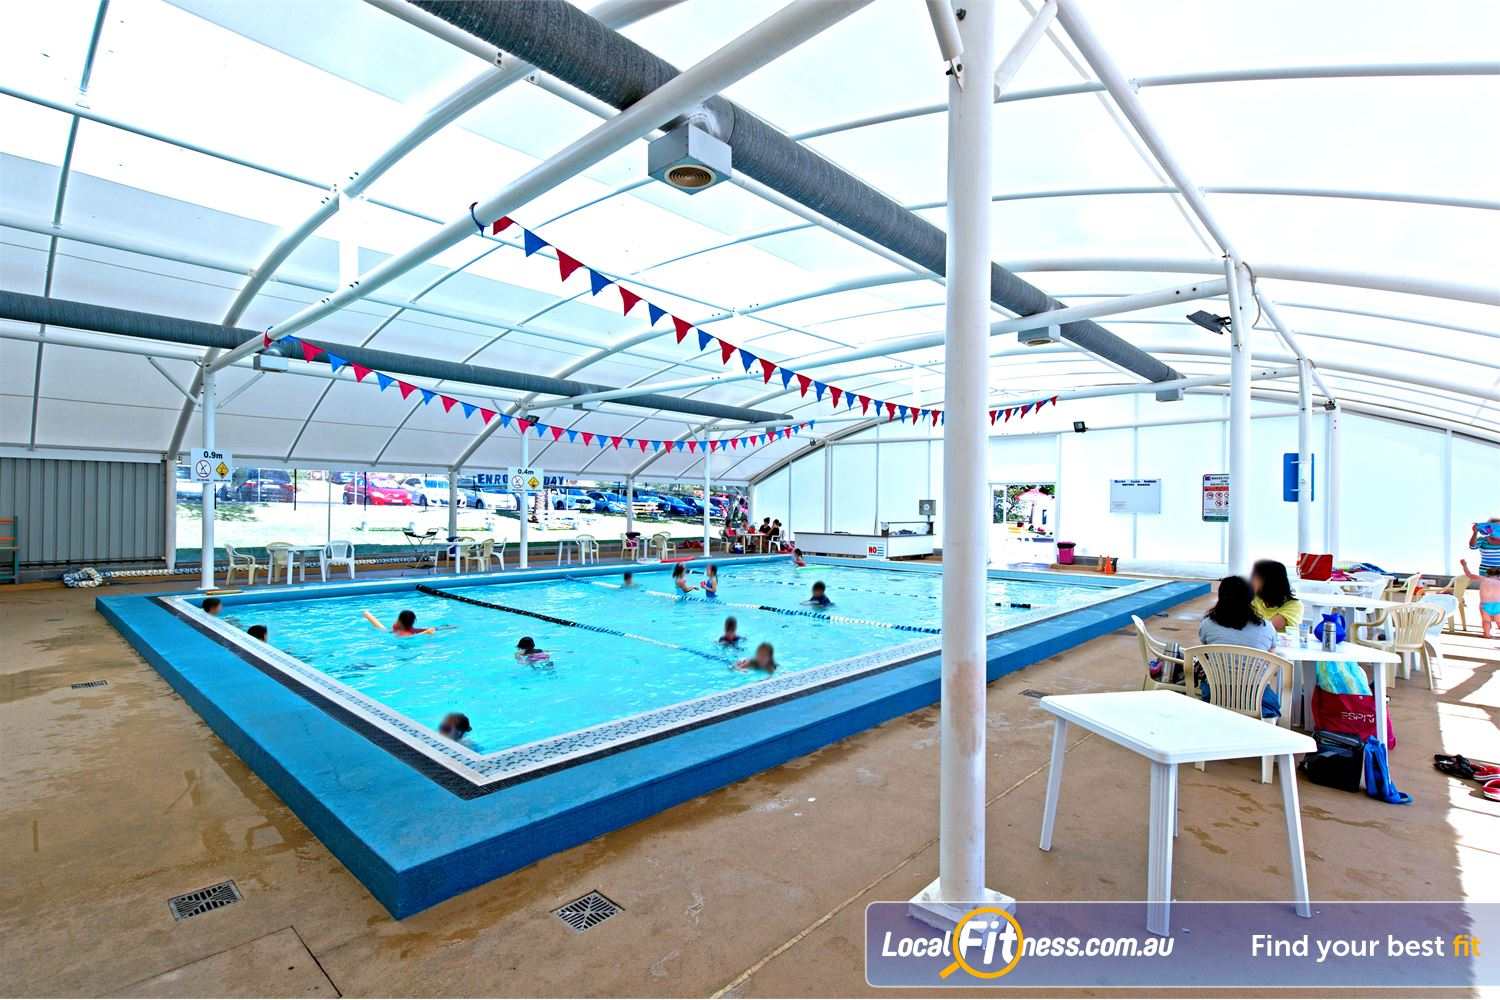 Waves Fitness and Aquatic Centre Baulkham Hills The indoor Learn to swim pool.